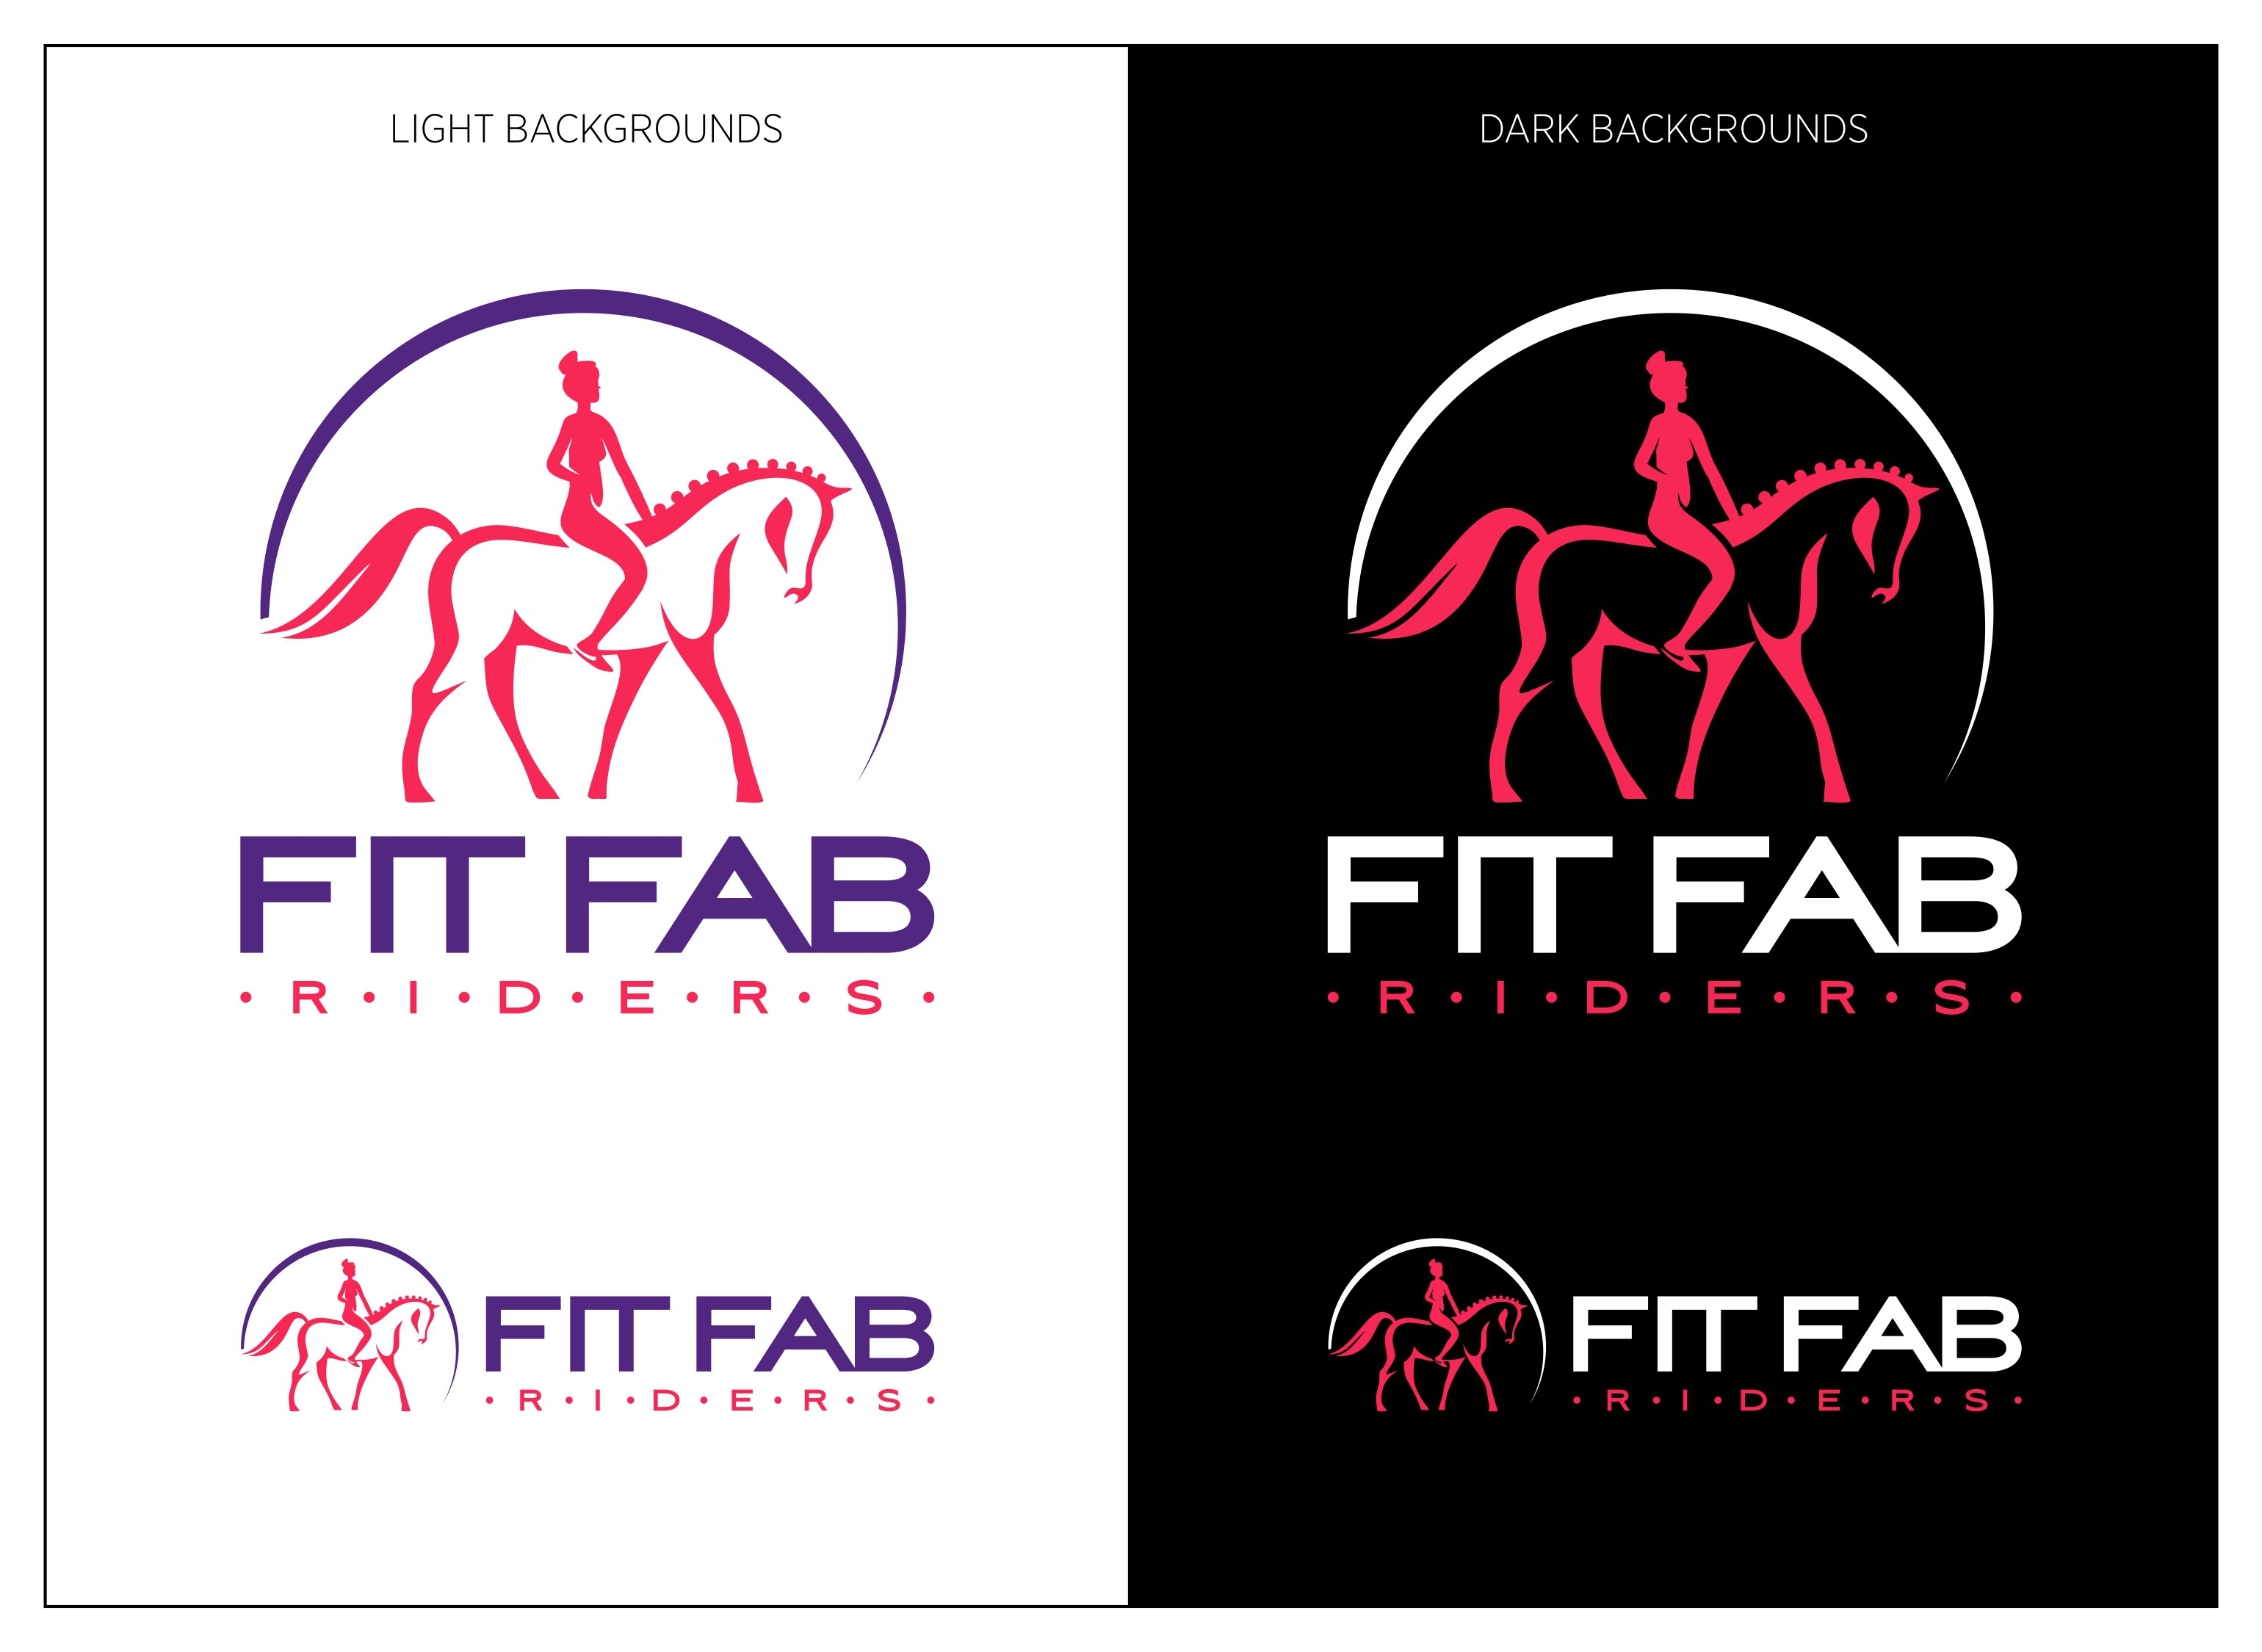 Create an image to entice equestrians/horse lovers to get fit